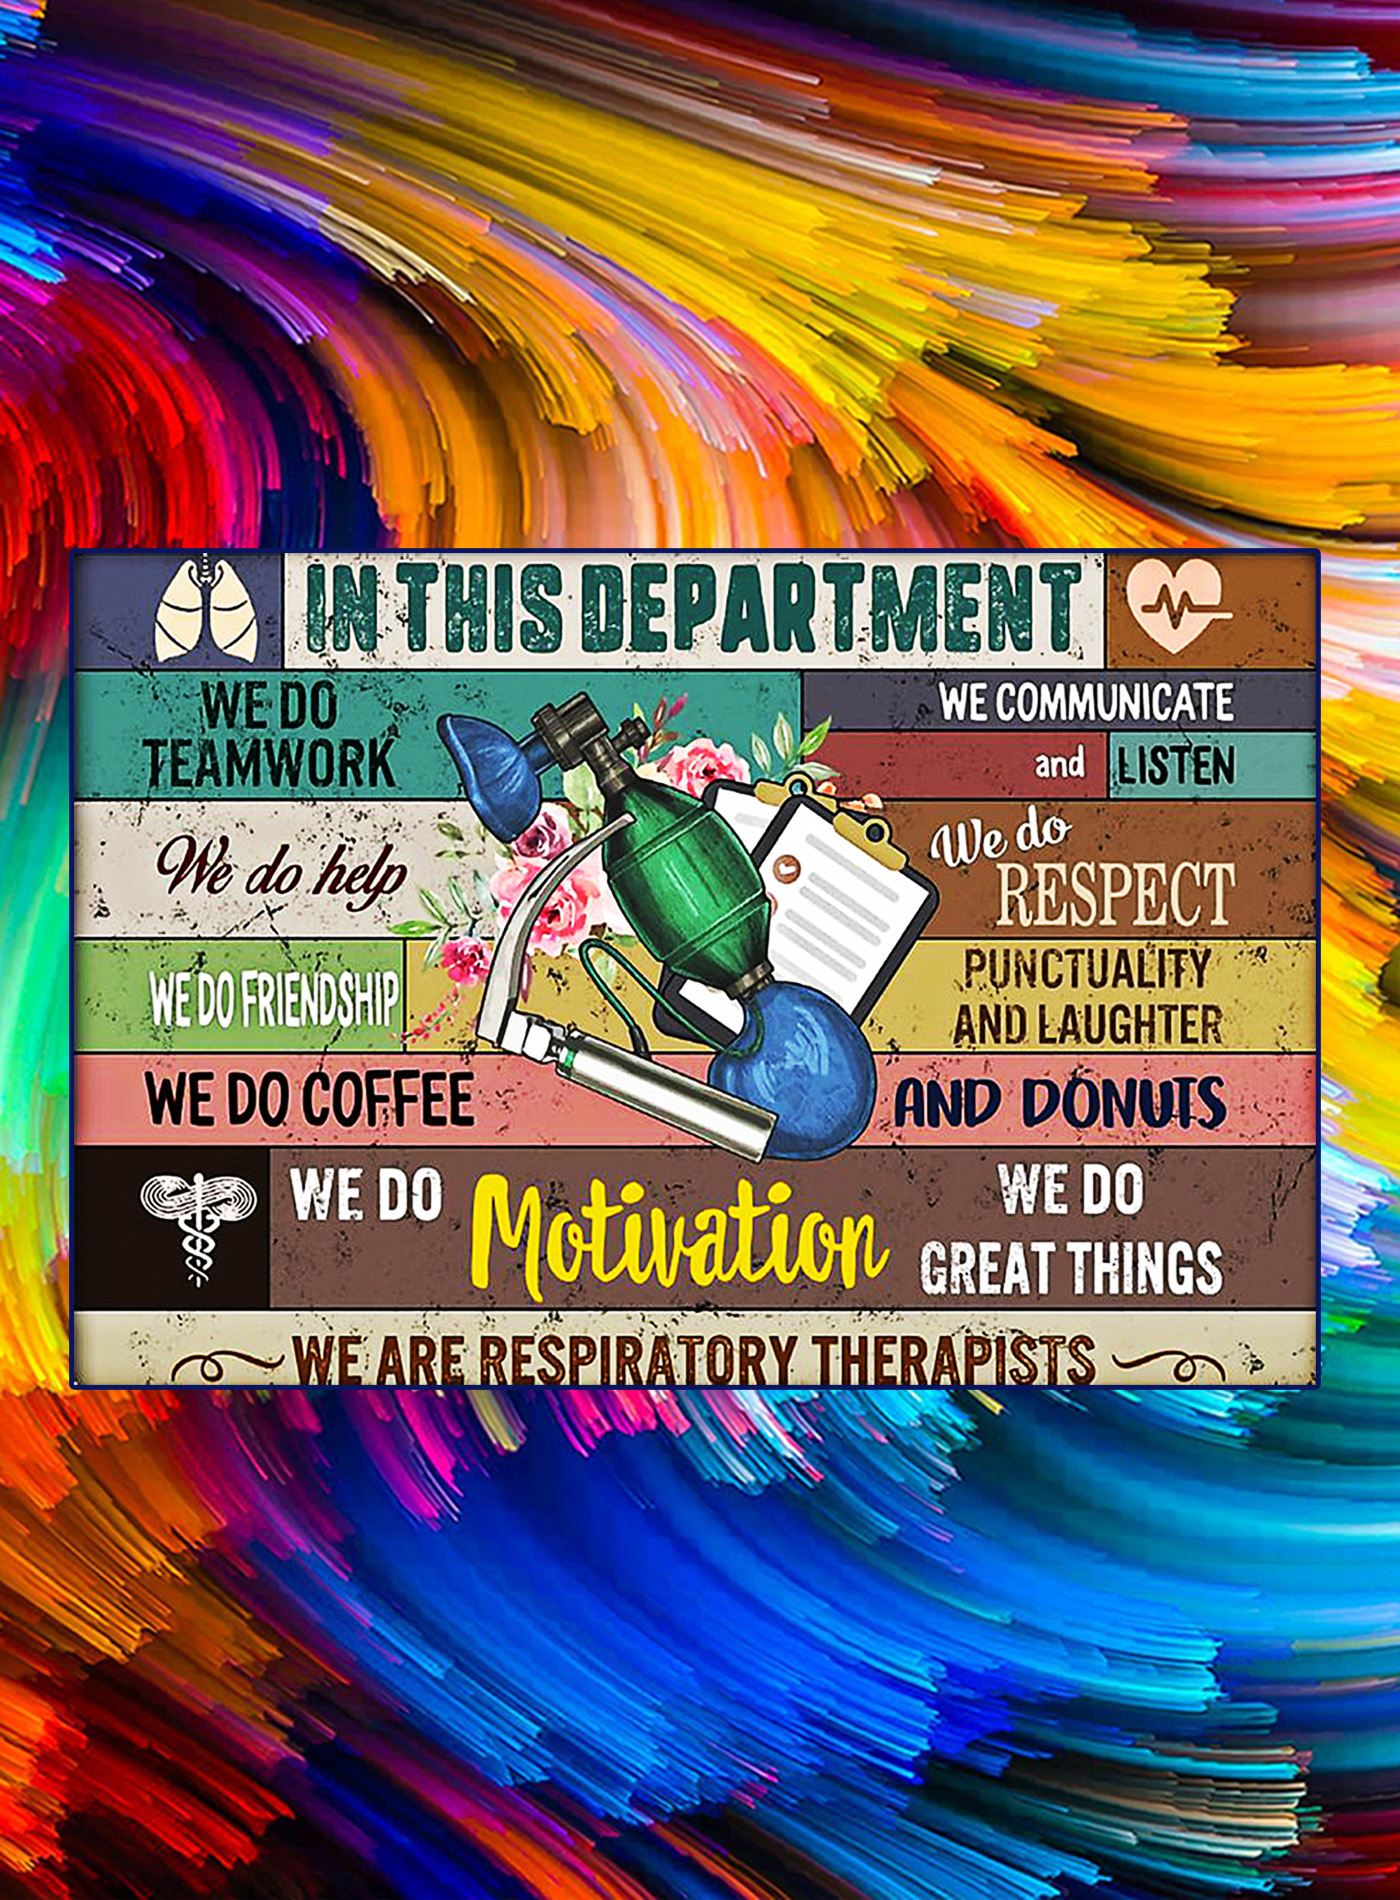 In this department we are respiratory therapists poster - A1